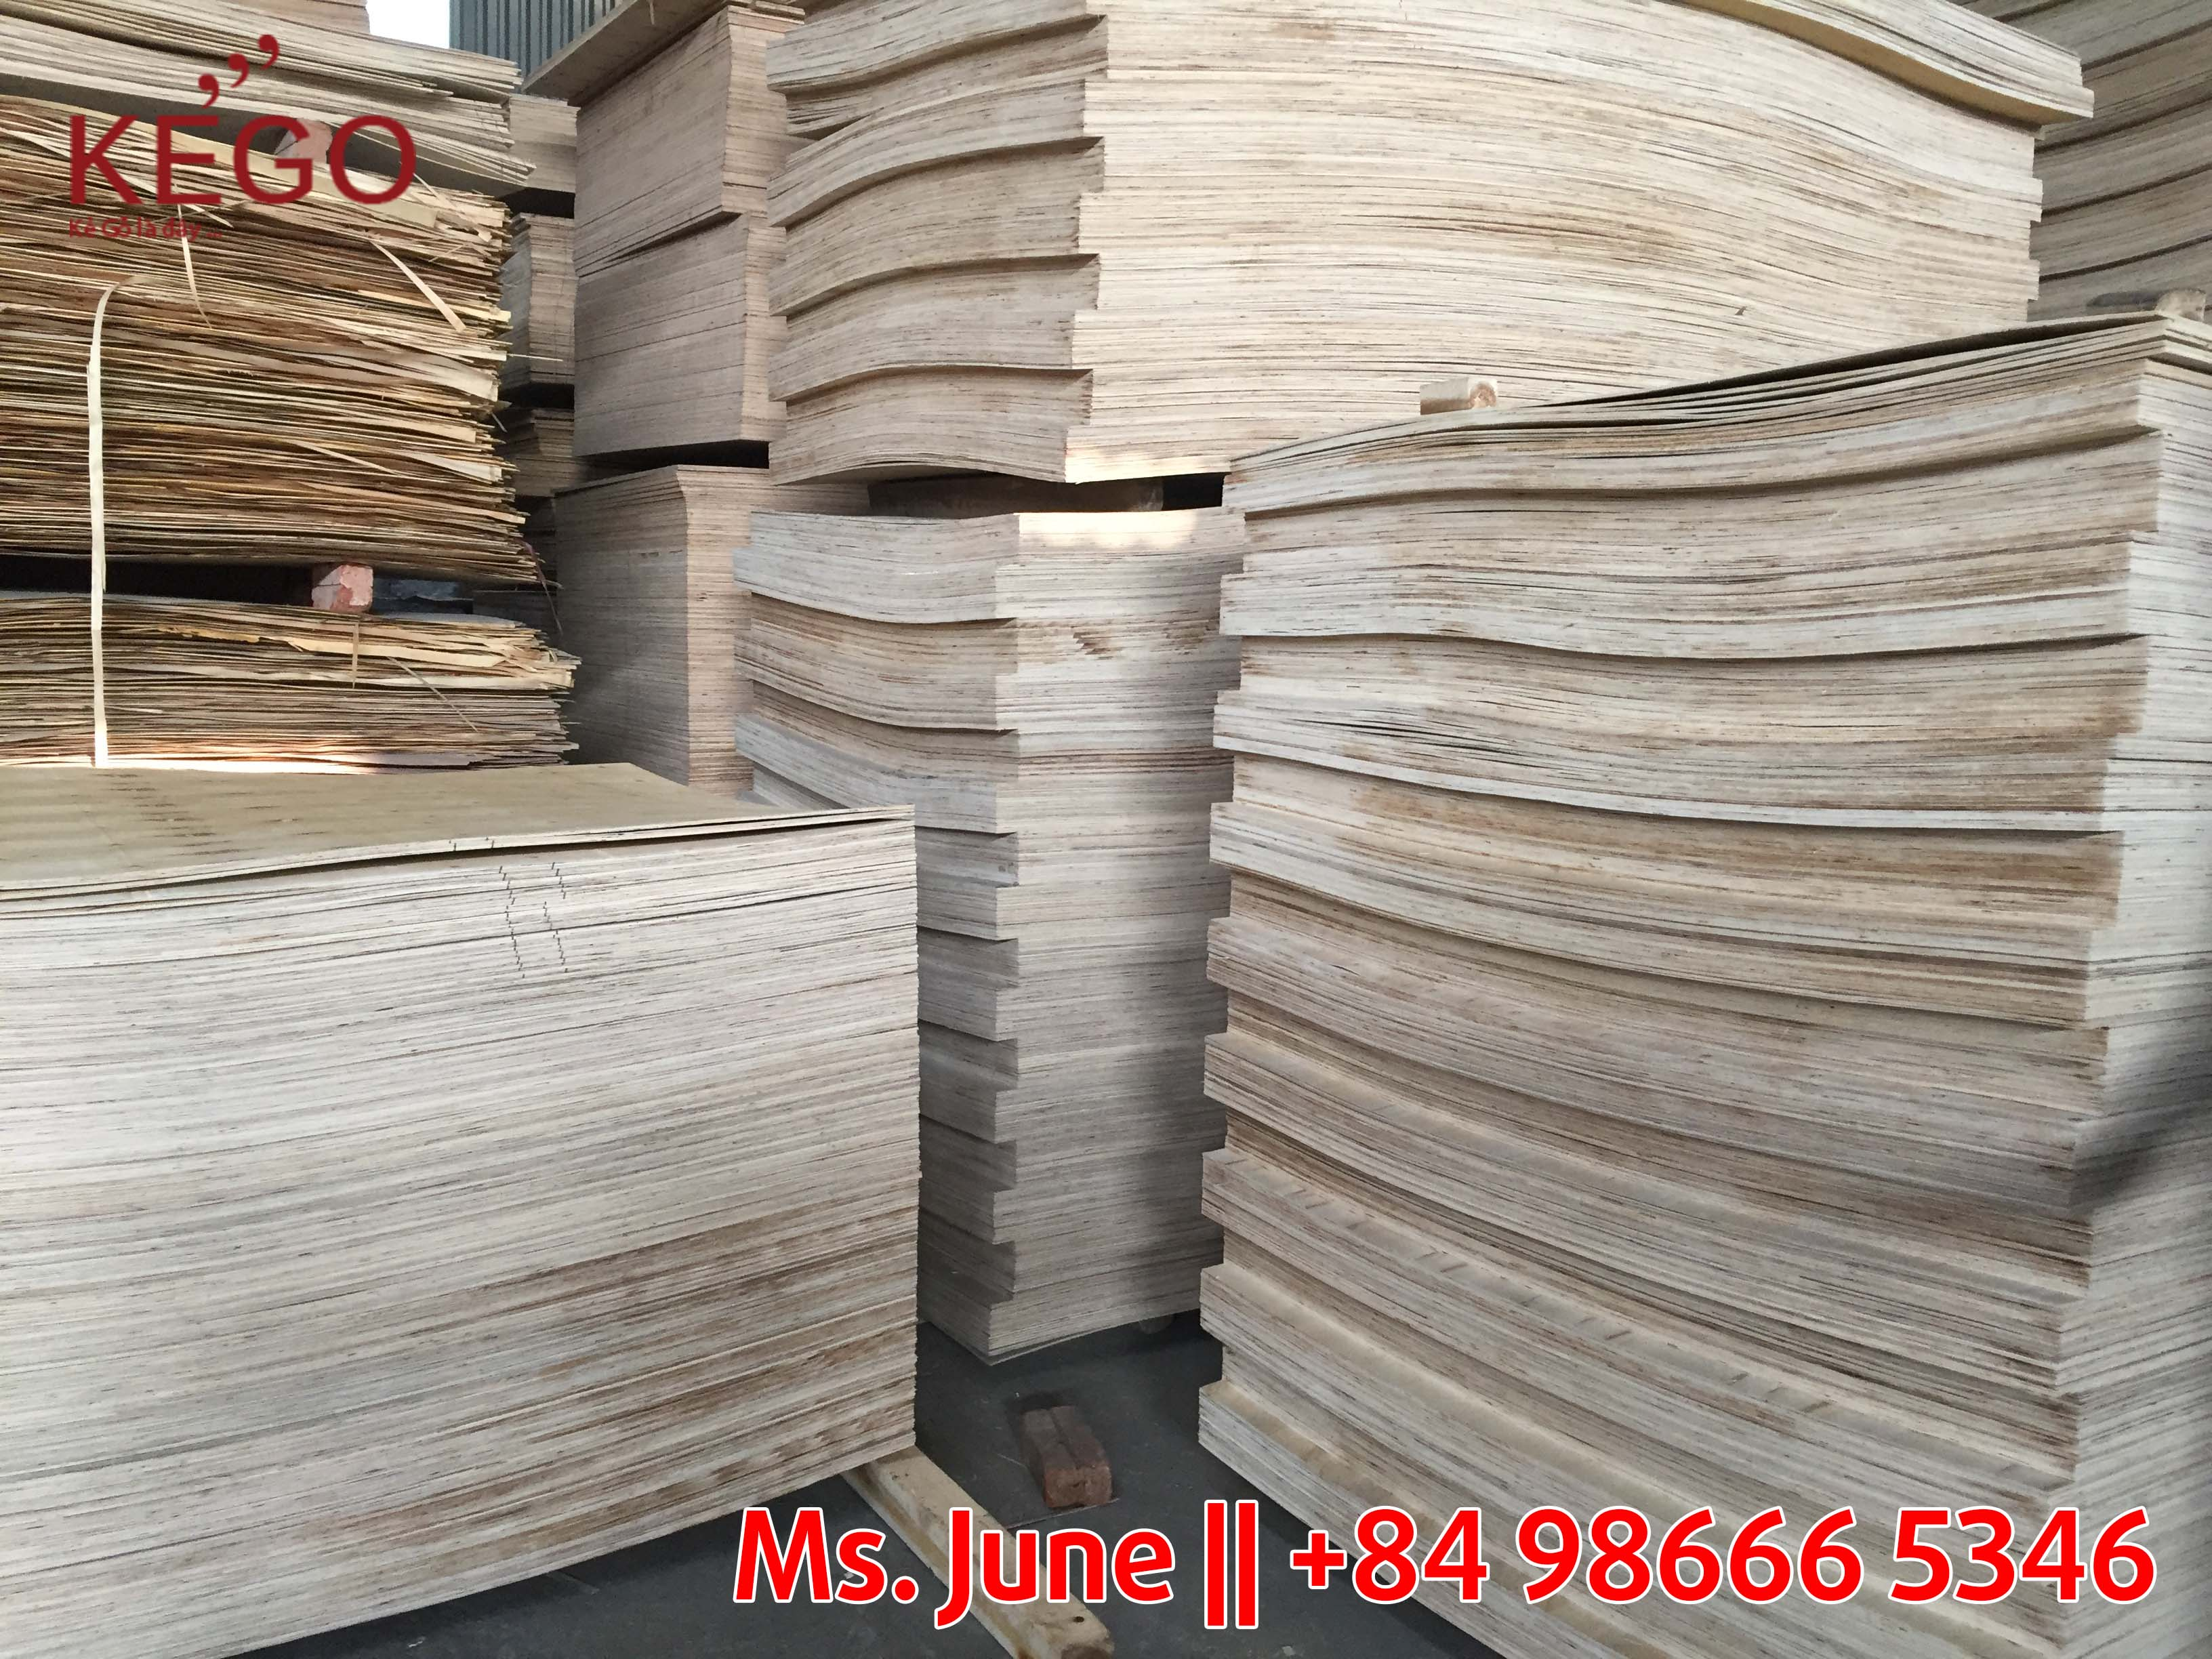 Commercial plywood - packing AB Grade from Vietnam